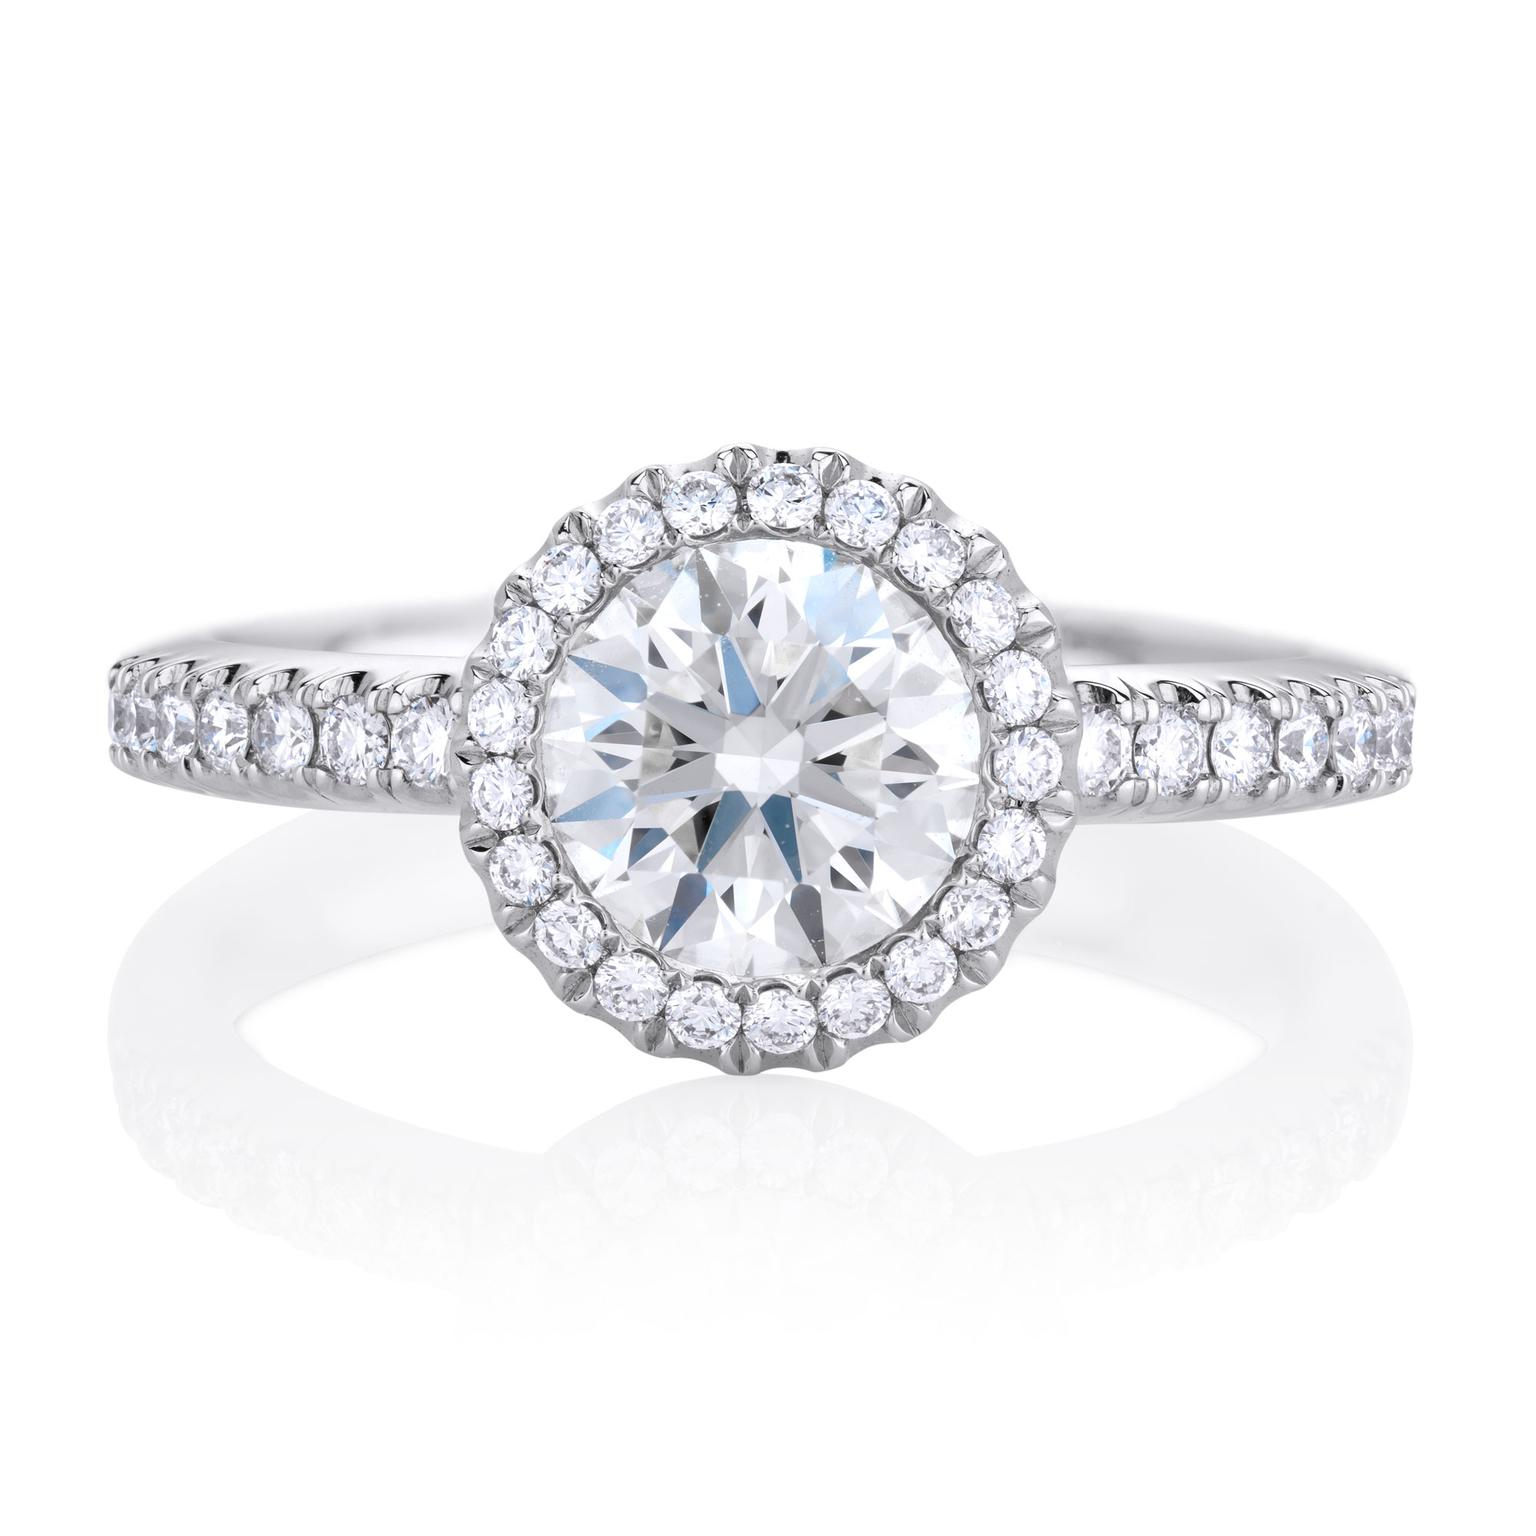 should i a 1 carat diamond engagement ring or 2 carats the